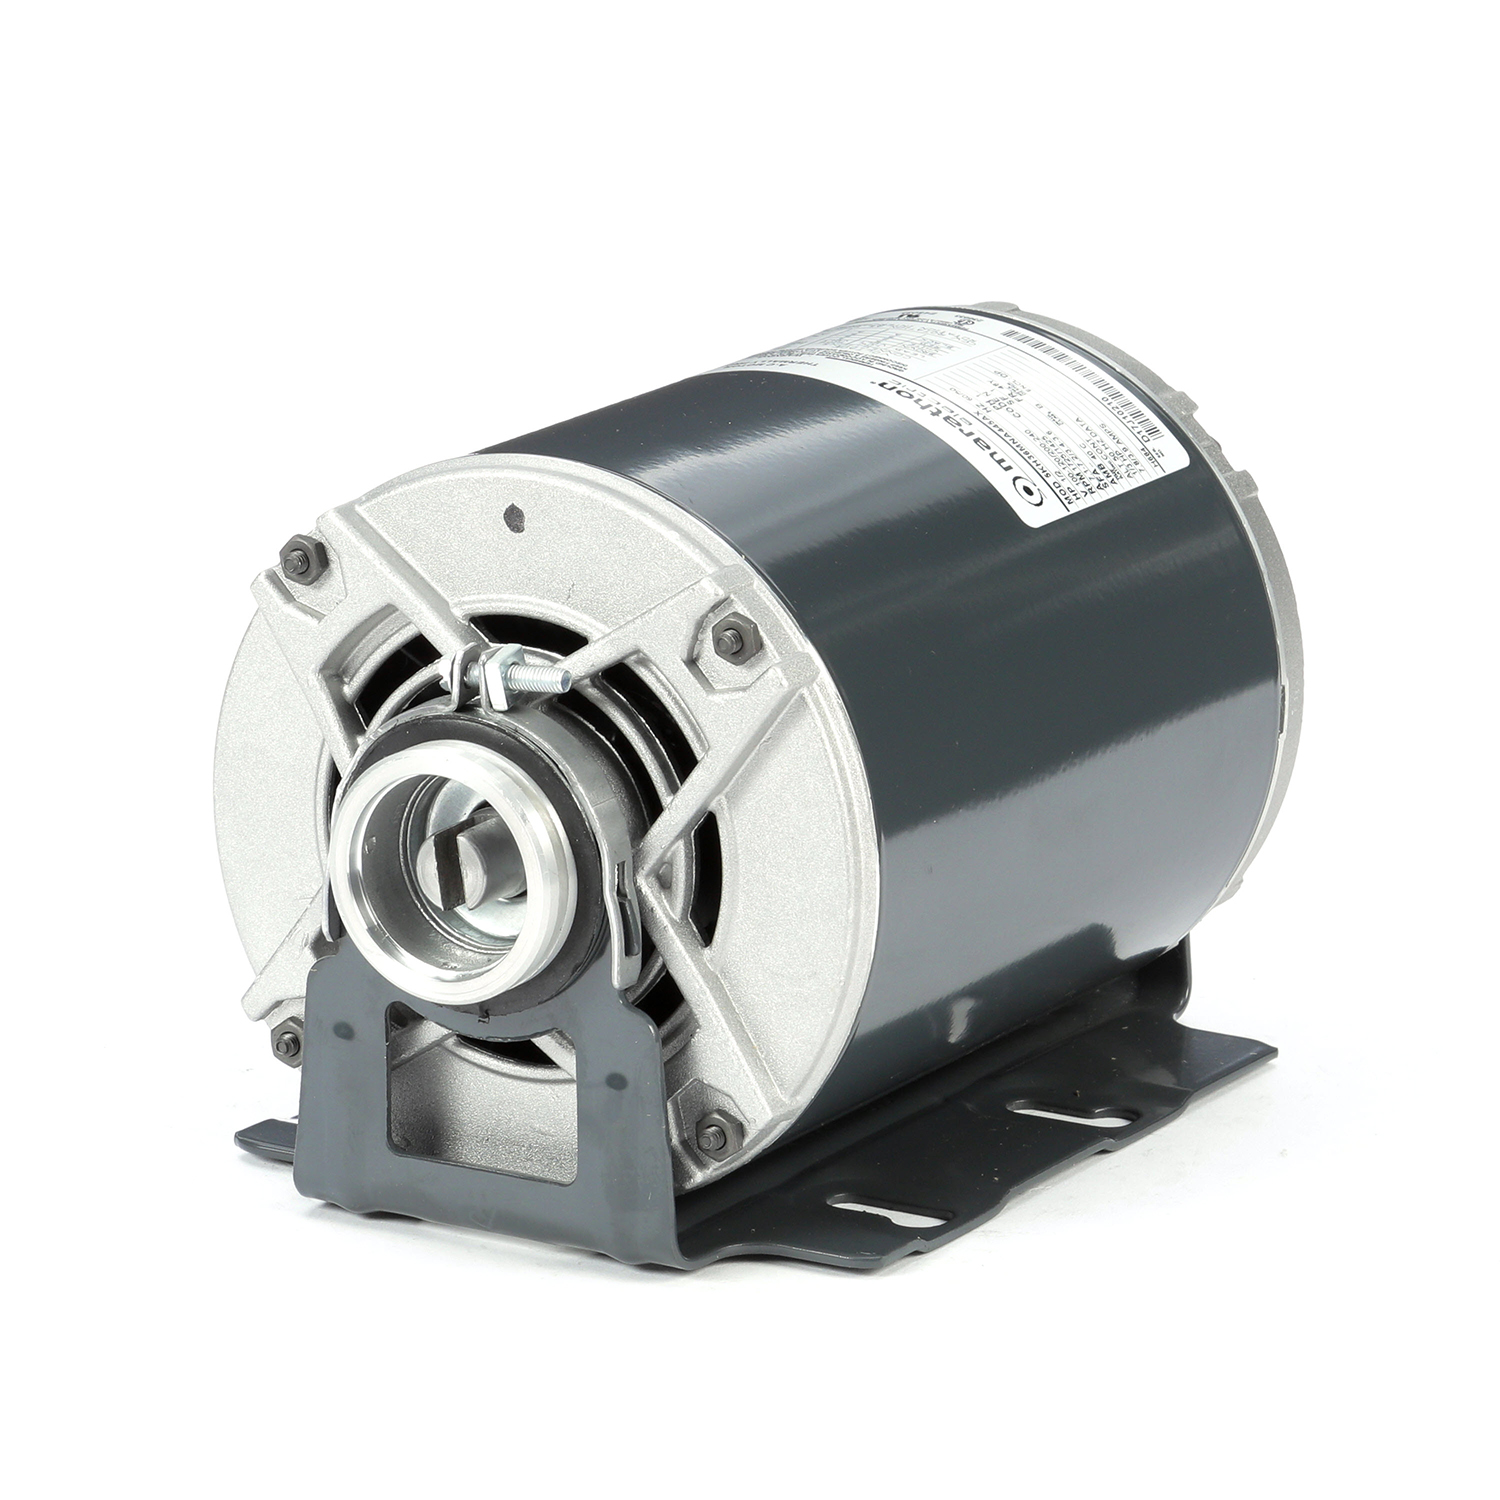 48Y FR Split Phase Carbonator Pump Mtr, 1/2 HP, 1725 RPM, 100-120/200-240 V